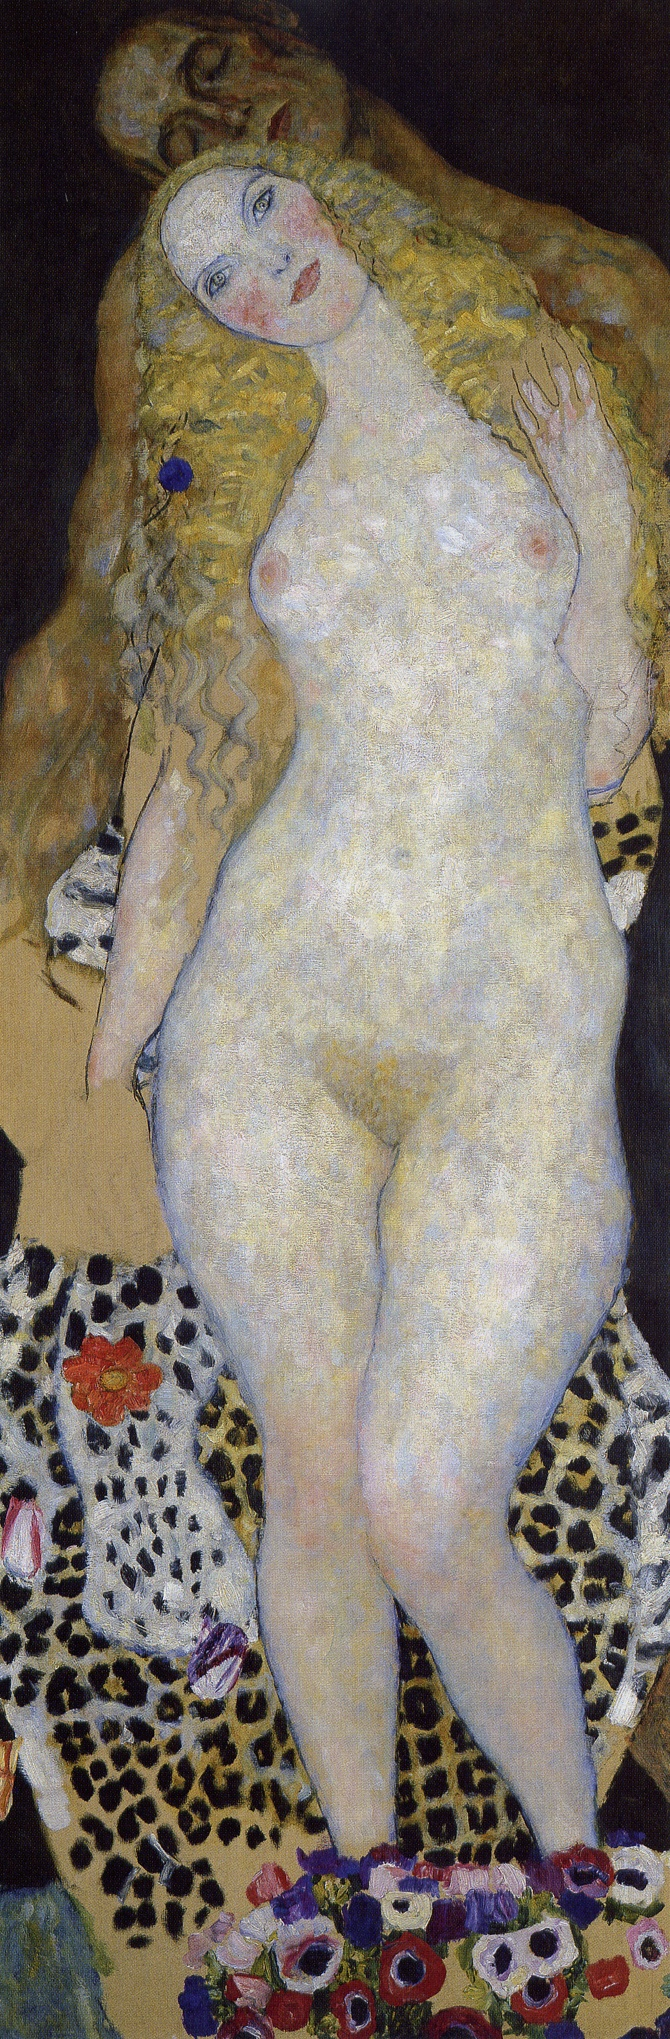 gustav_klimt-adam_and_eve-1918-trivium-art-history.jpg